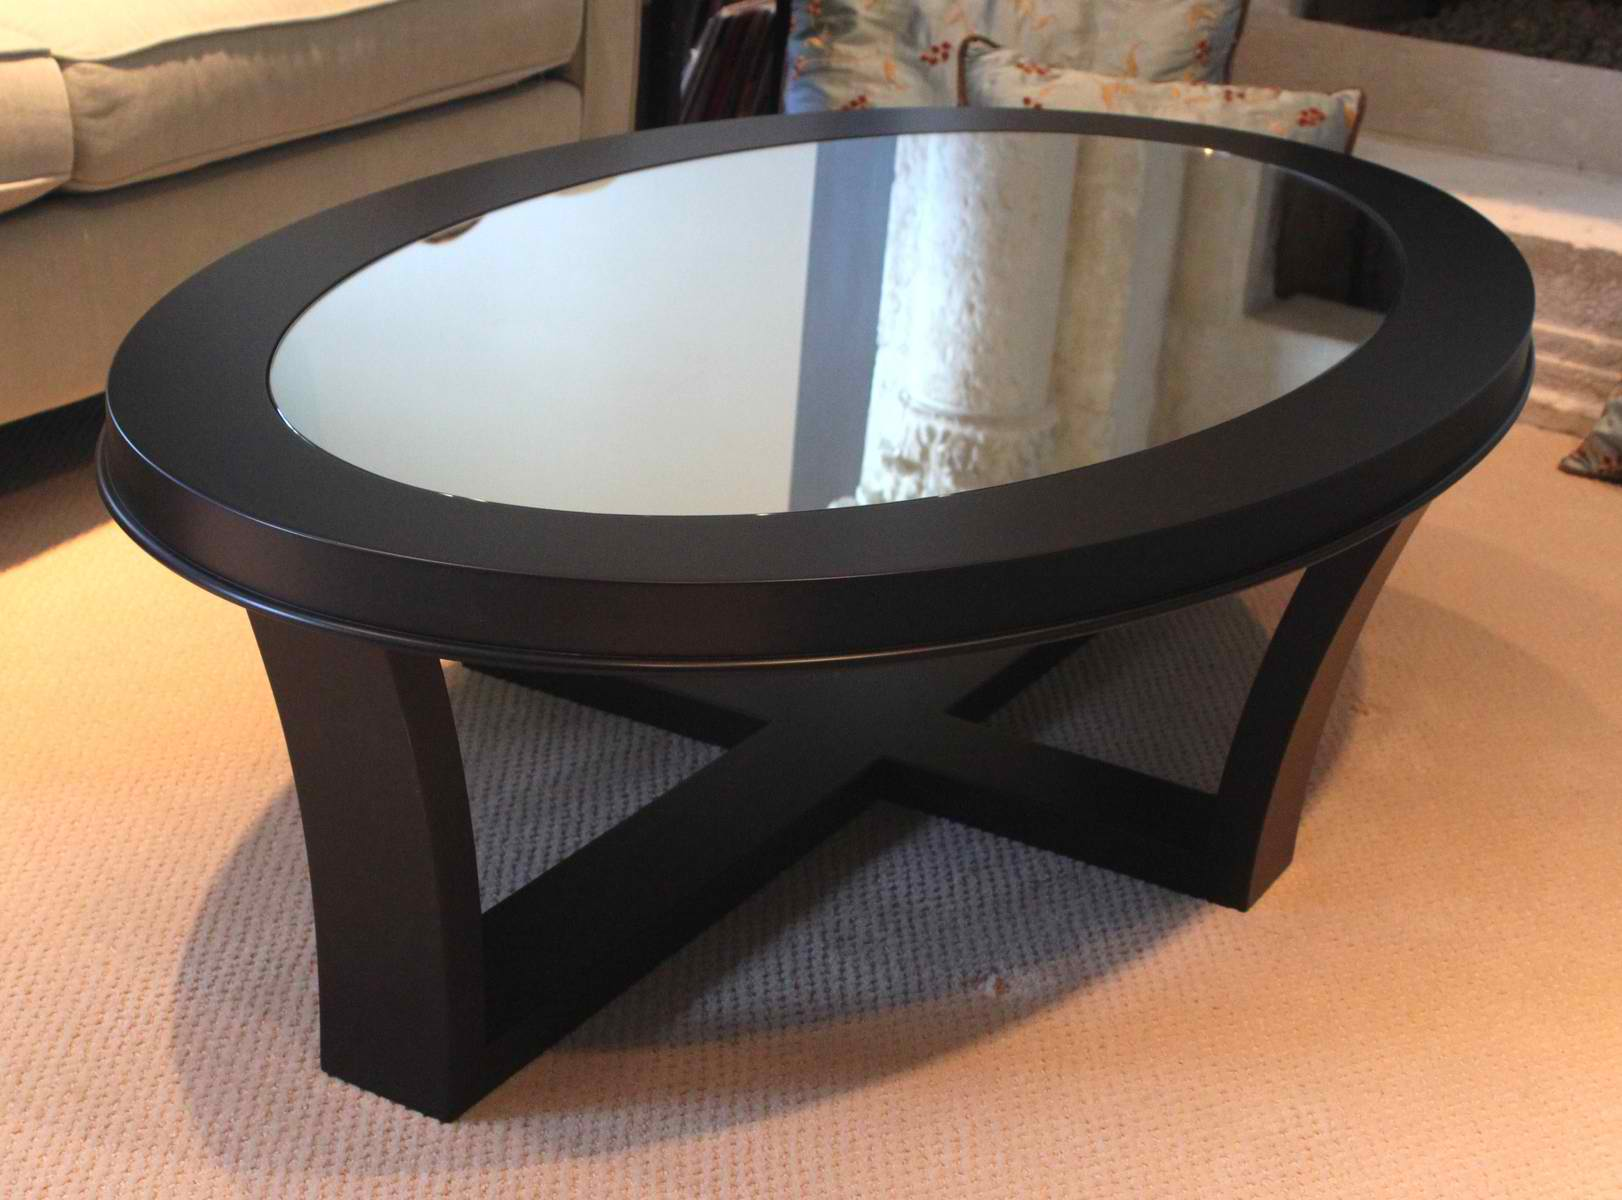 Black Glass Coffee Table With Black Legs You Keep Your Things Organized And The Table Top Clear The Perfect Size To Fit With One Of Our Younger Section (Image 9 of 10)